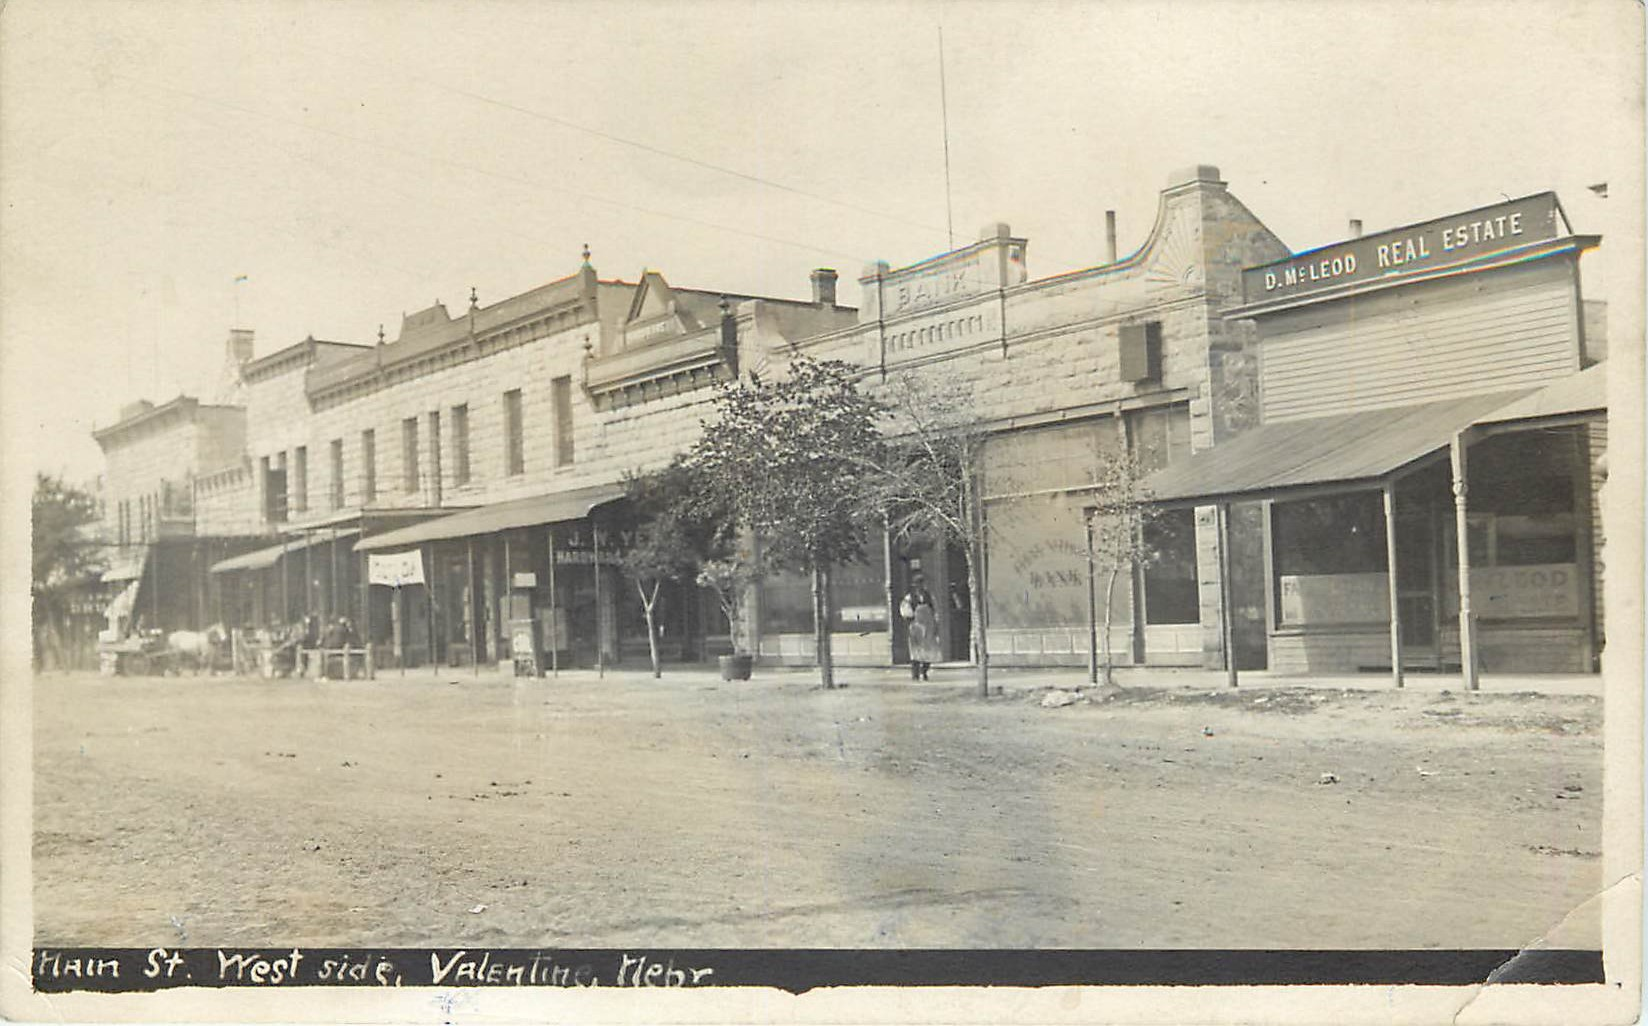 Main Street, West Side, Valentine, Nebraska